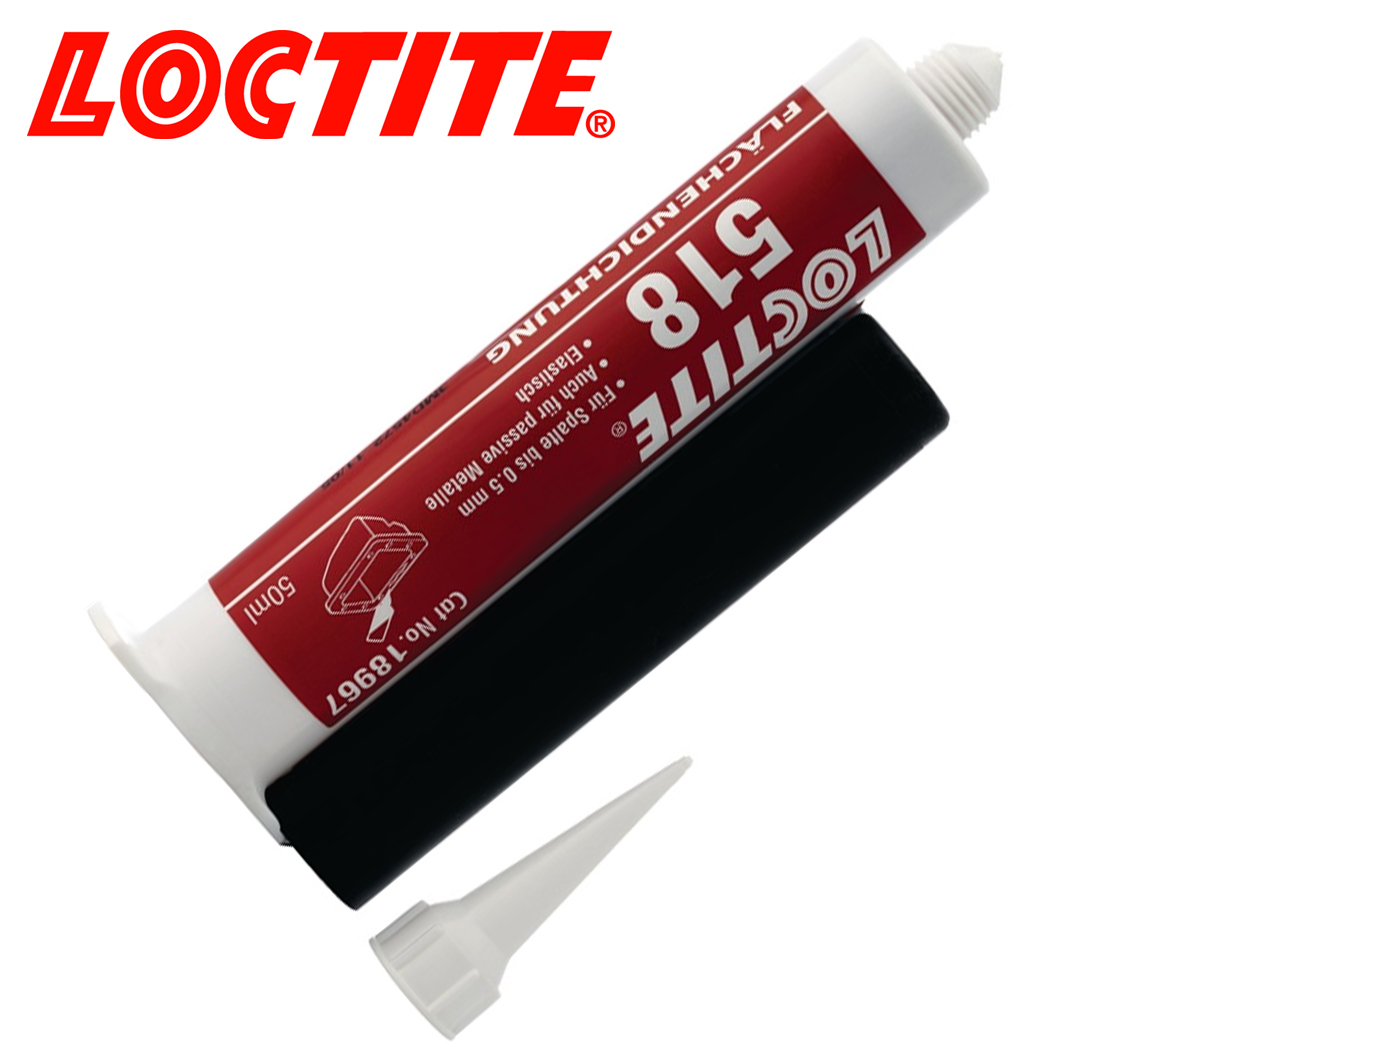 Oppervlakteafdichting 518 rood patroon loctite | DKMTools - DKM Tools